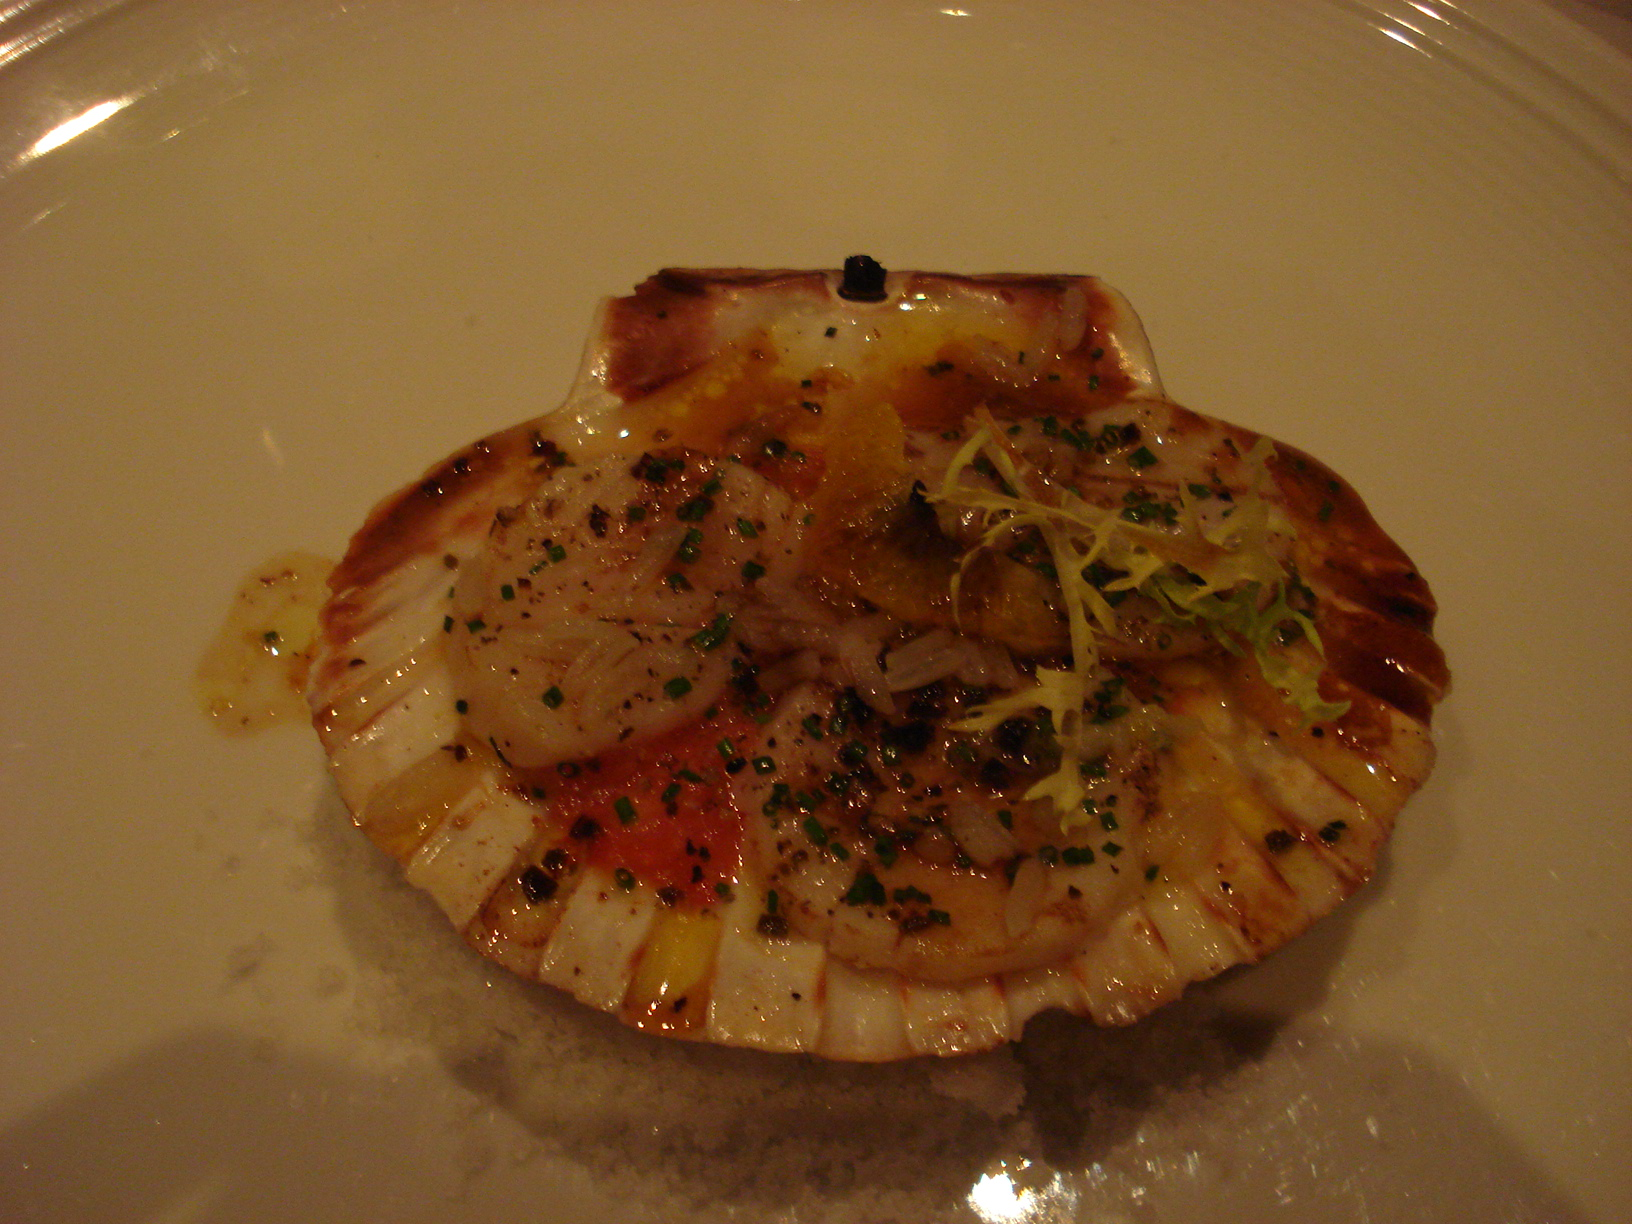 ... scallops broiled dinner broiled scallops ingredients broiled scallops